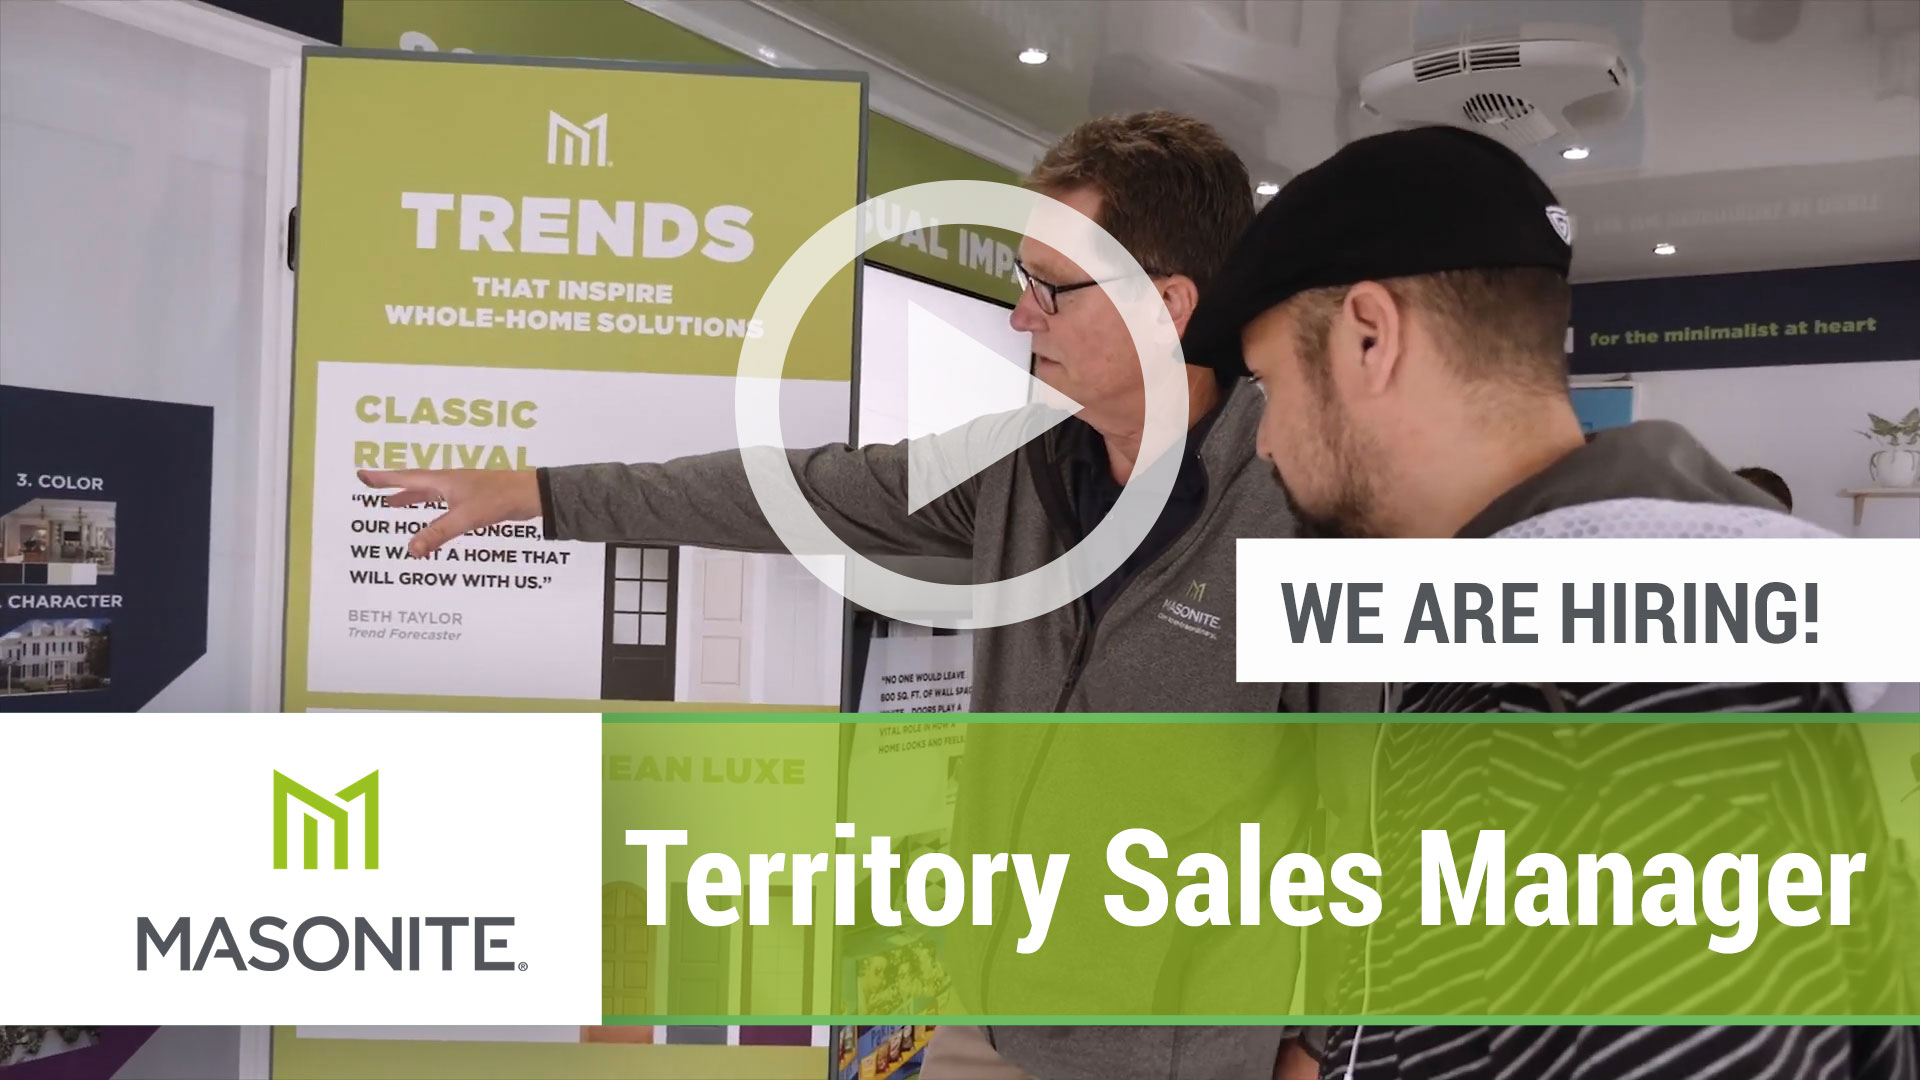 Watch our careers video for available job opening Territory Sales Manager in Mesquite, Houston and Dallas.